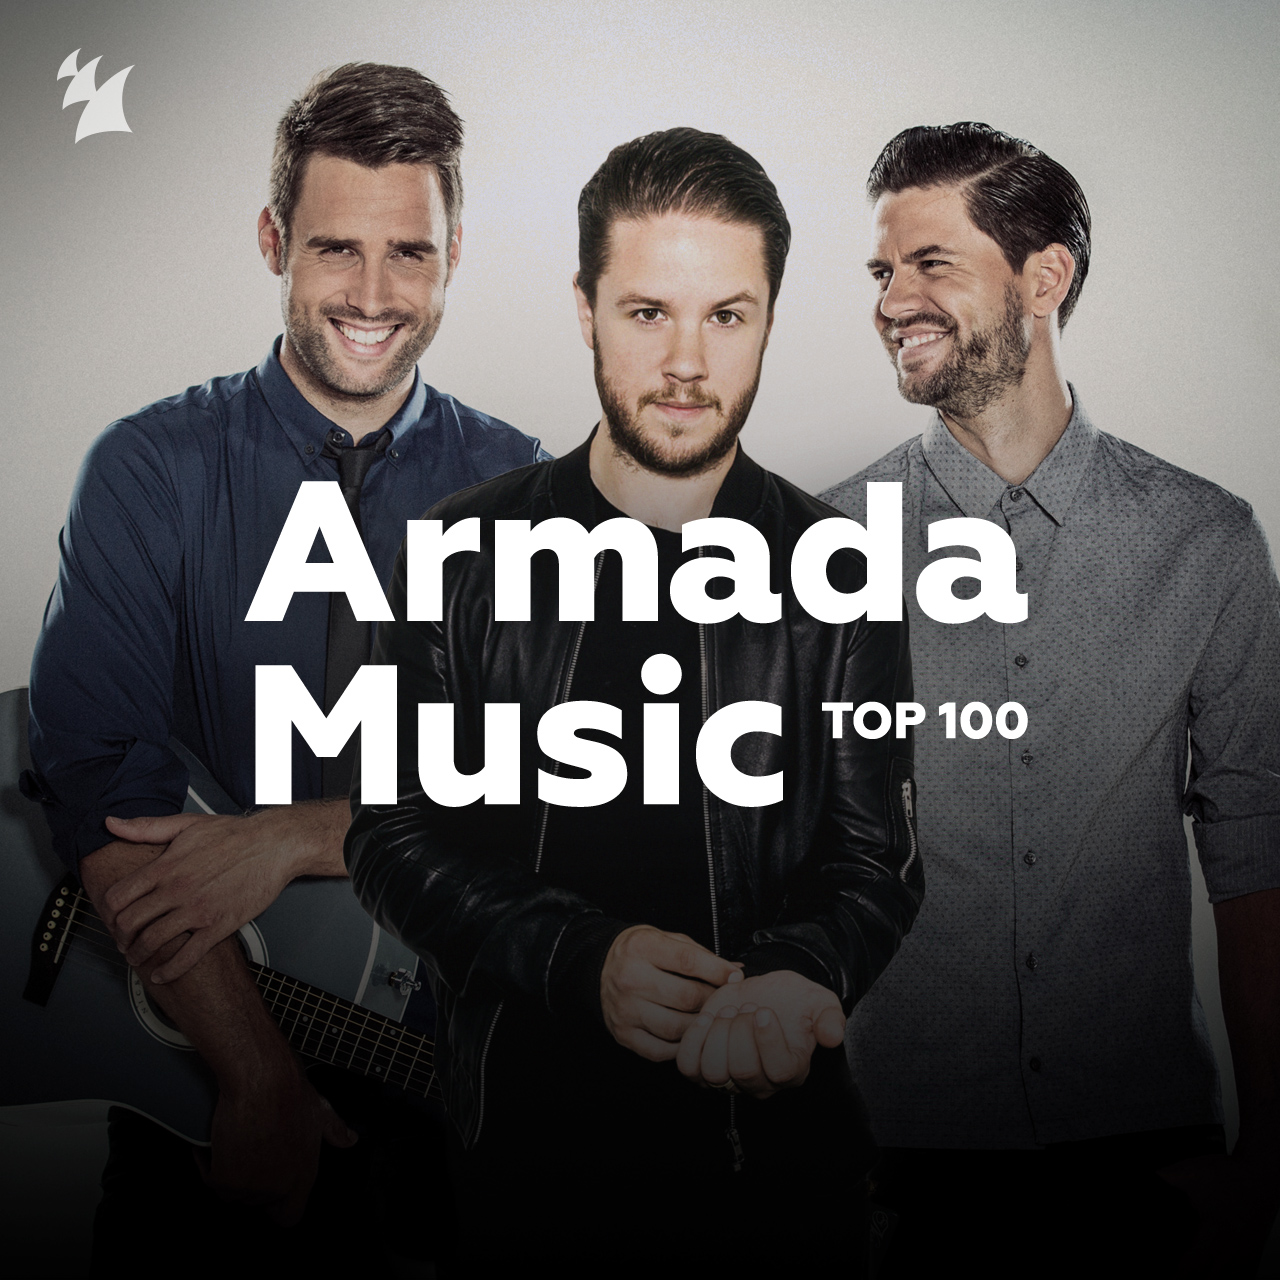 Armada Music Top 100